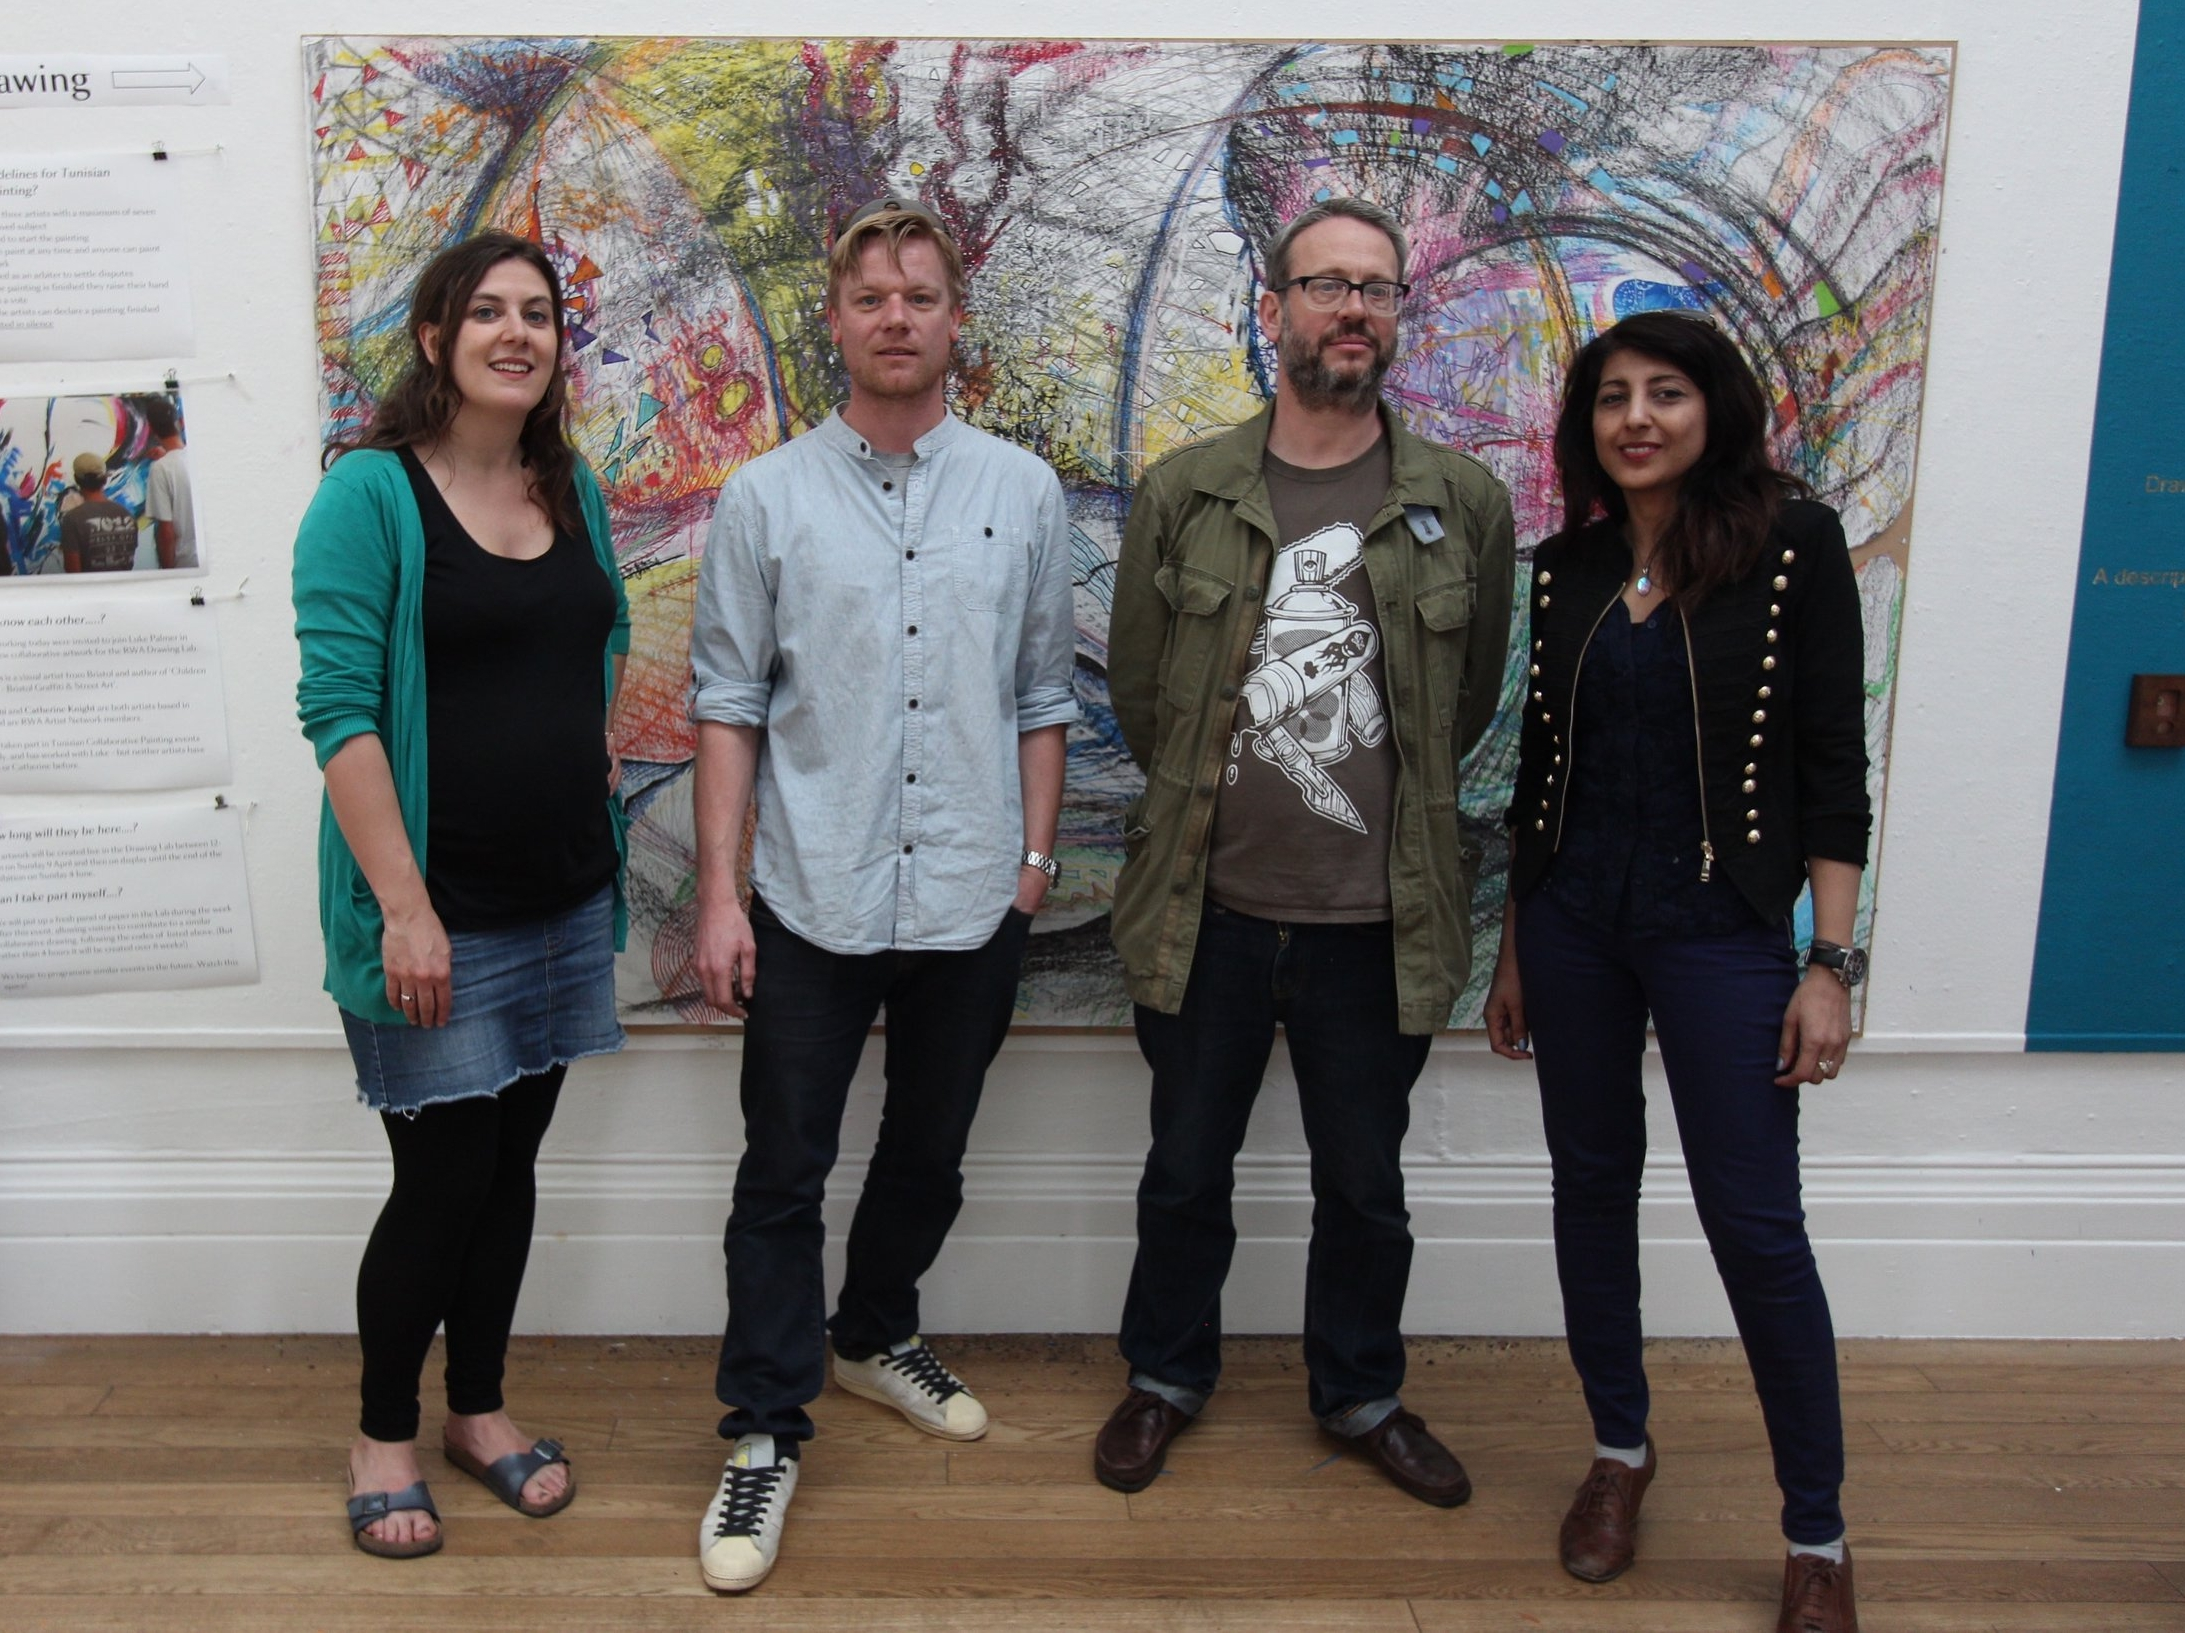 Cathrine Knight, Luke Palmer, Felix Braun, Bea Kayani - Collaborative drawing at the RWA, April 2017.